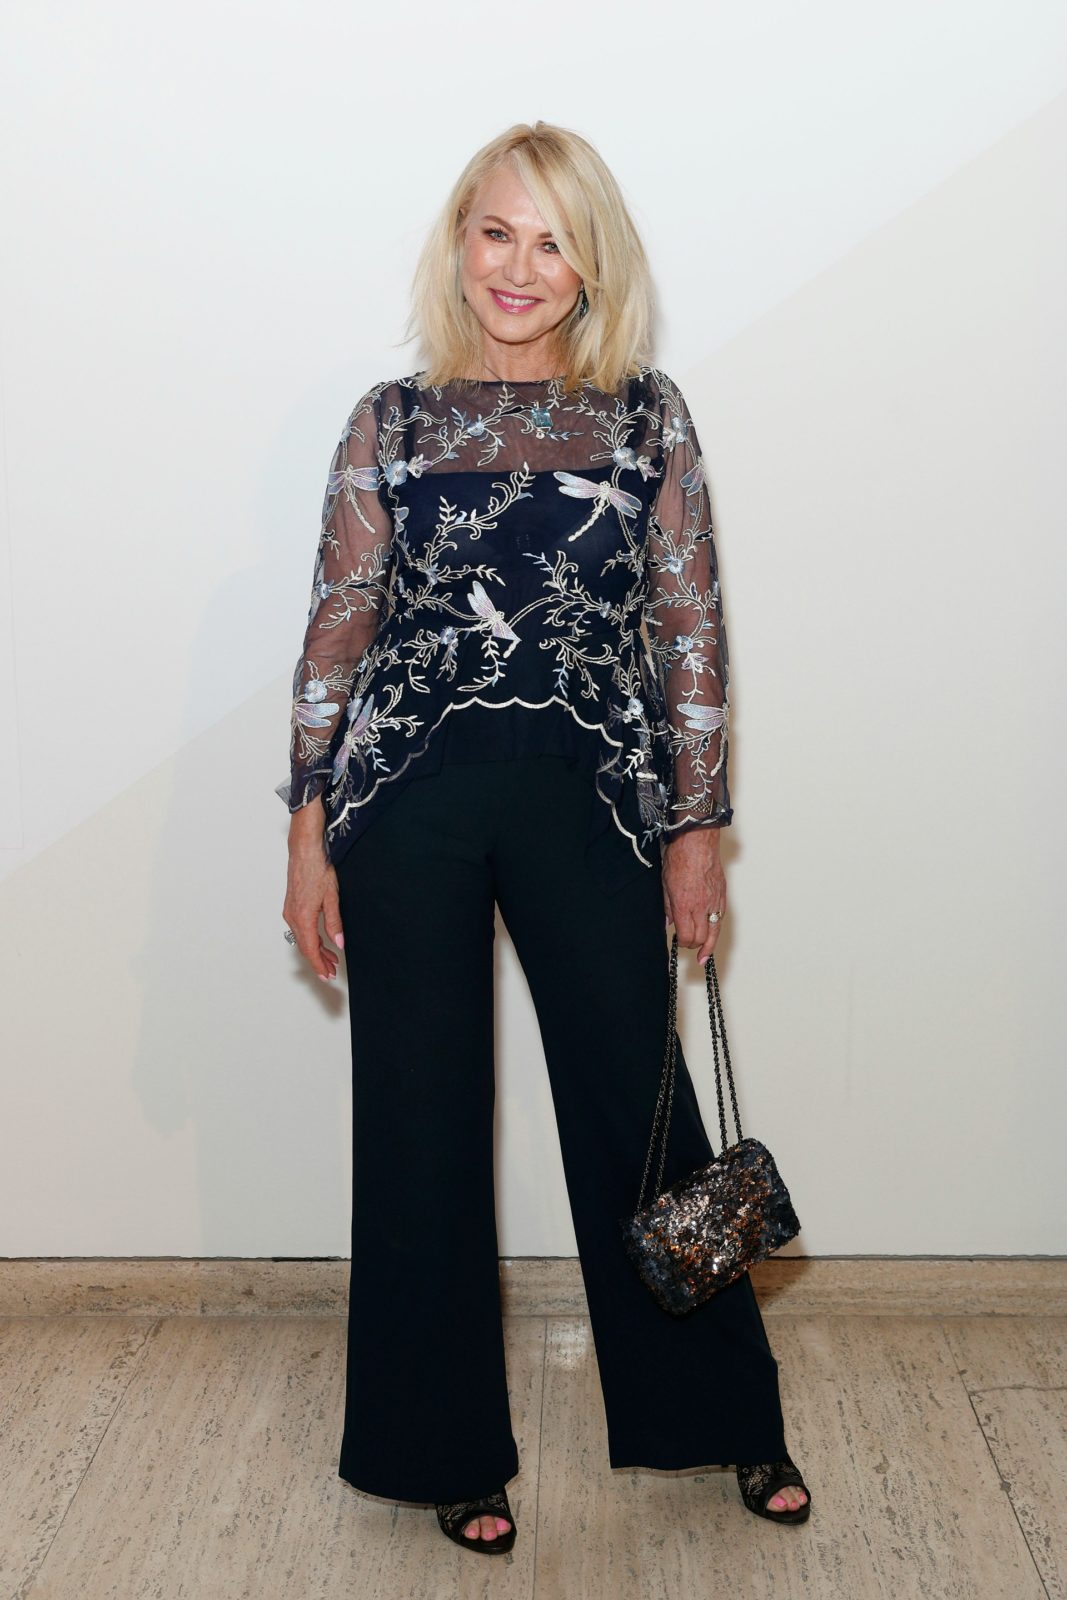 Kerri-Anne Kennerley jazzed up a pair of navy slacks for her latest outing.